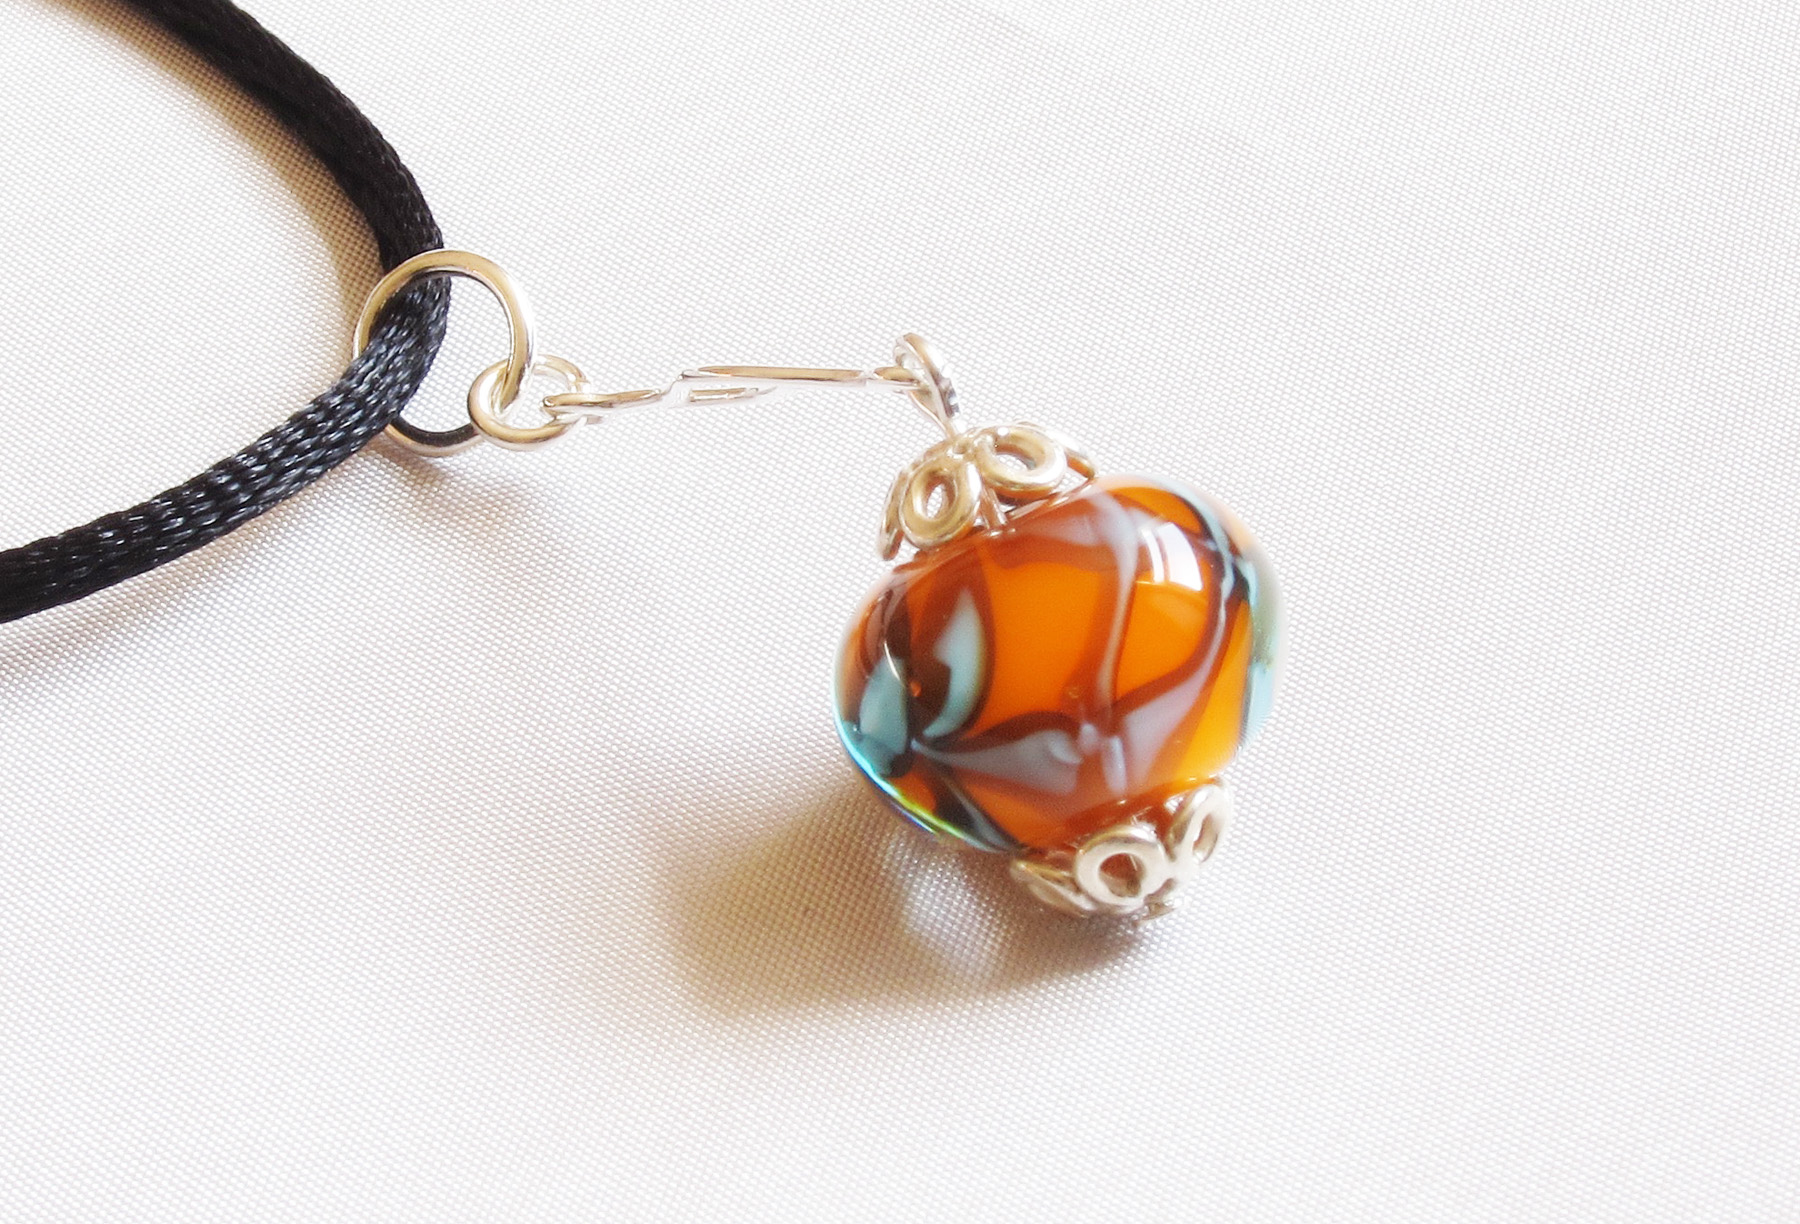 Orange And Turquoise Bead On Wavy Silver Pendant Necklace on Satin Cord